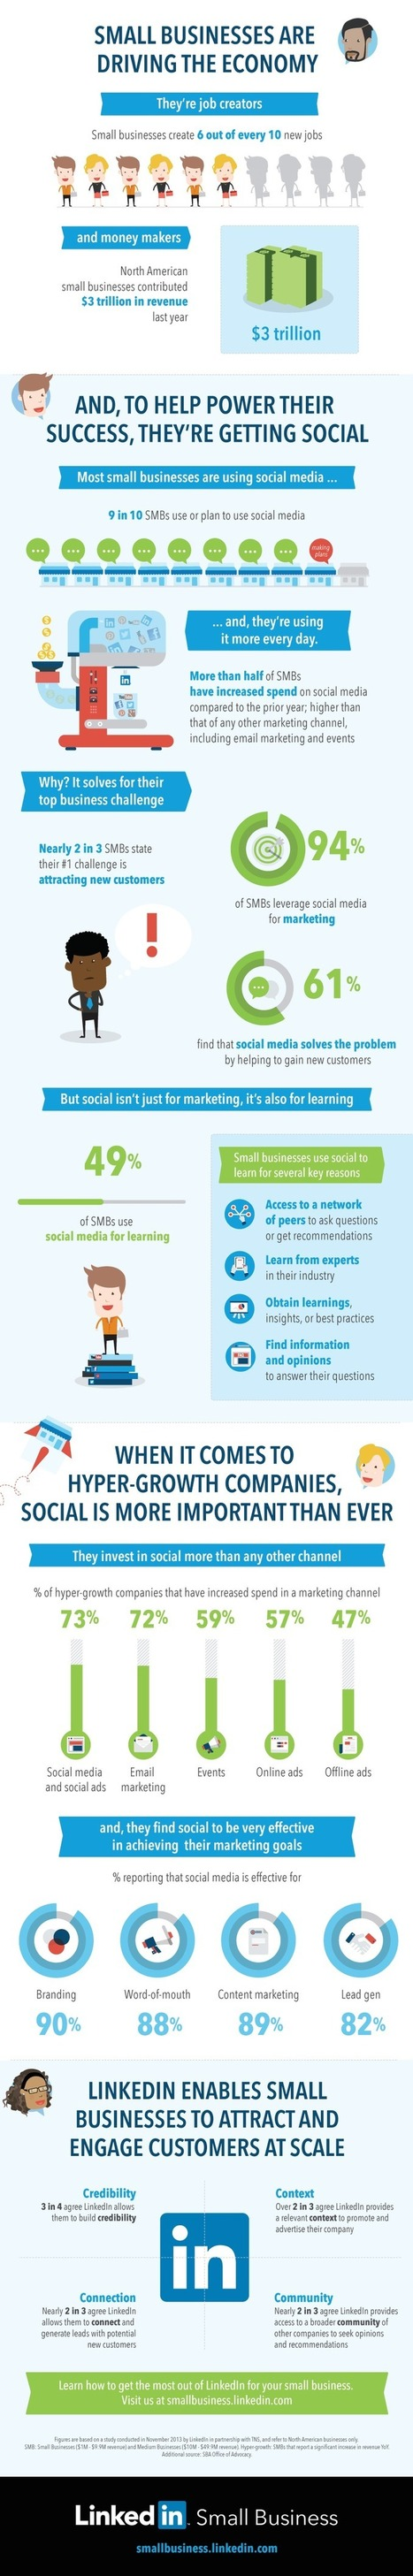 73% Of SMBs Have Increased Their Spending On Social Media Marketing! | Marketing strategy | Scoop.it